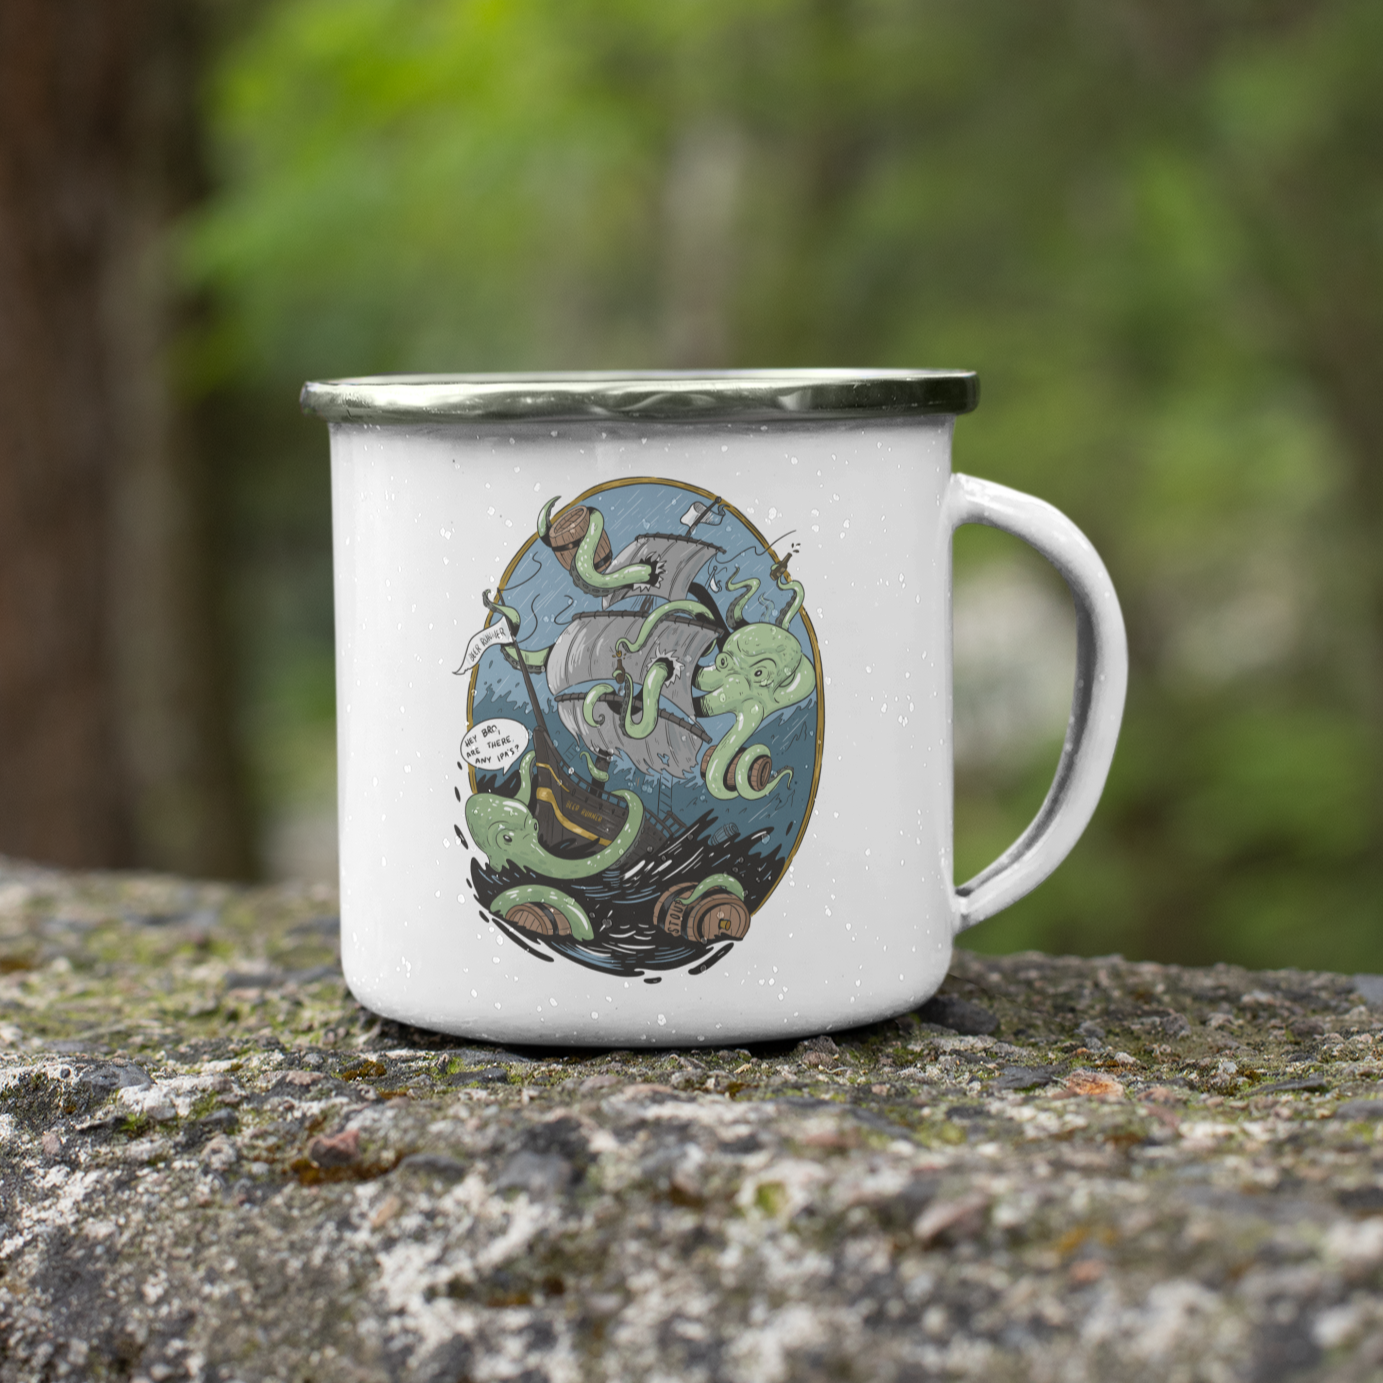 Giant Octopus Wants Beer 11oz Stainless Steel Camping Mug